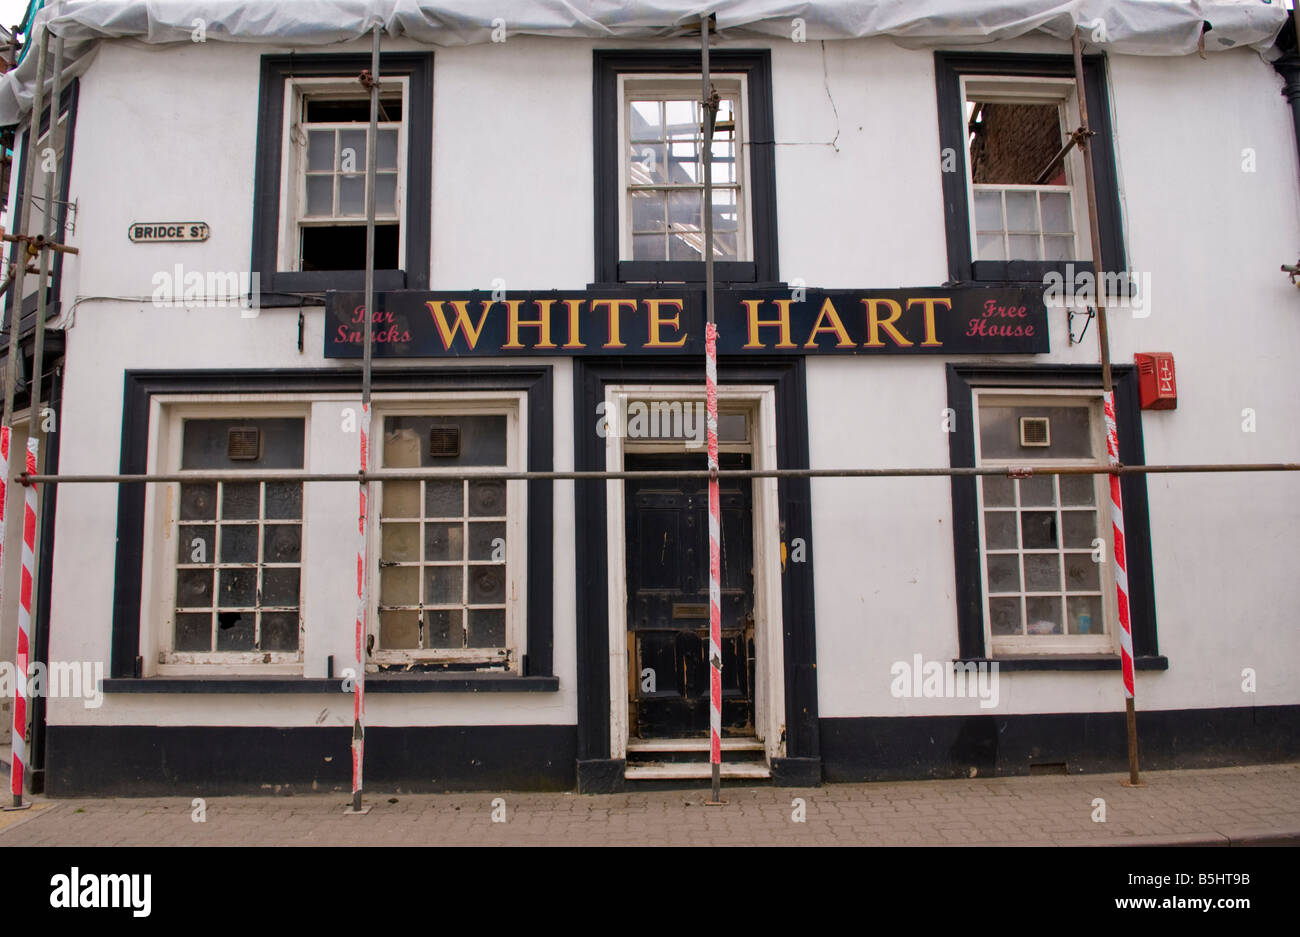 Exterior of White Hart pub being renovated in the rural market town of Usk Monmouthshire South Wales UK - Stock Image